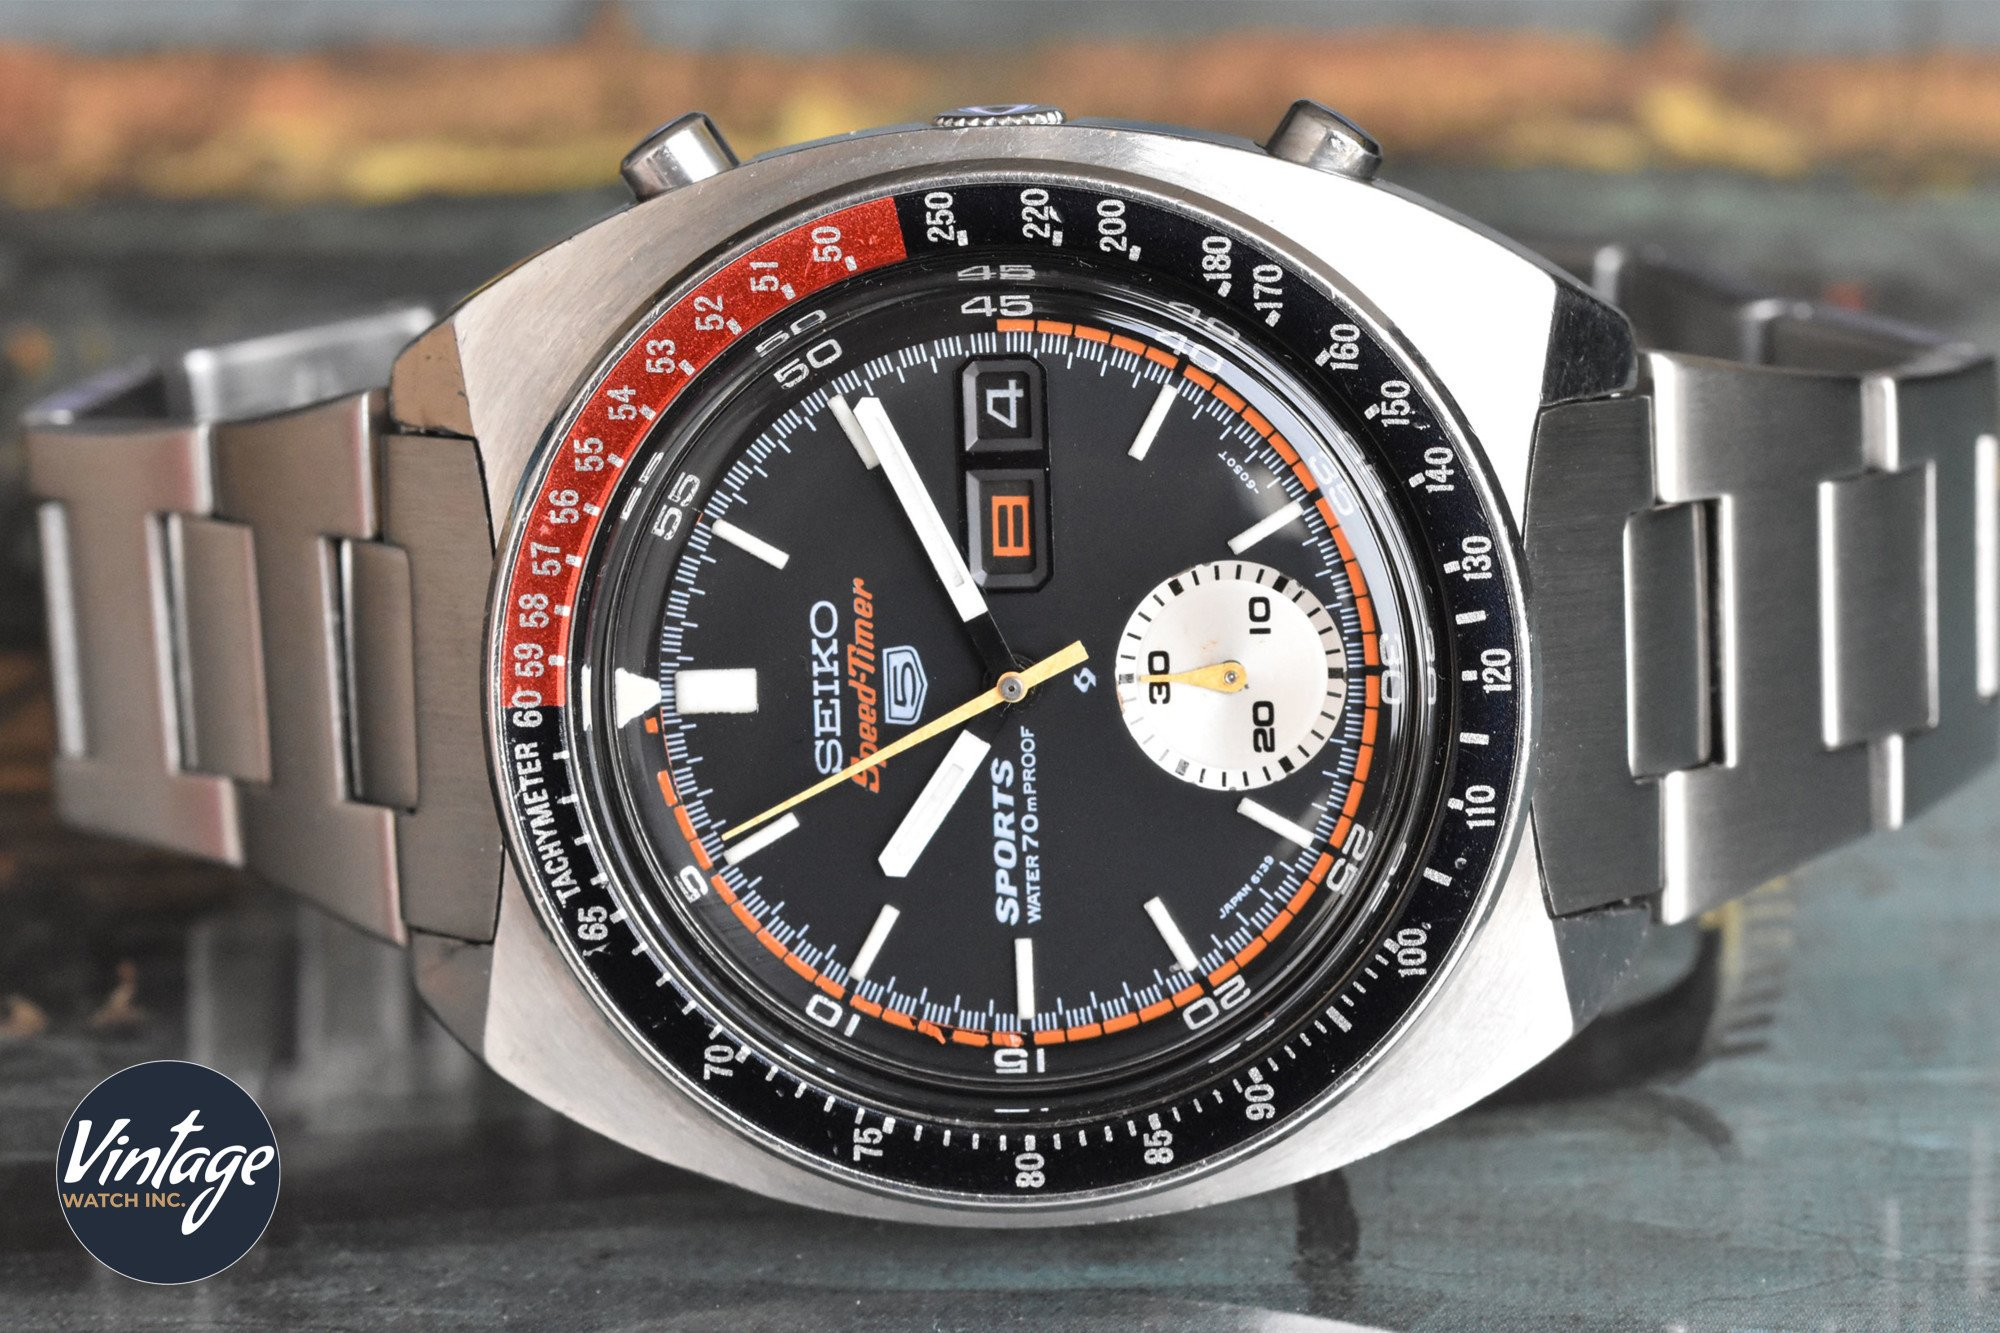 How to use a tachymeter scale on a chronograph watch?